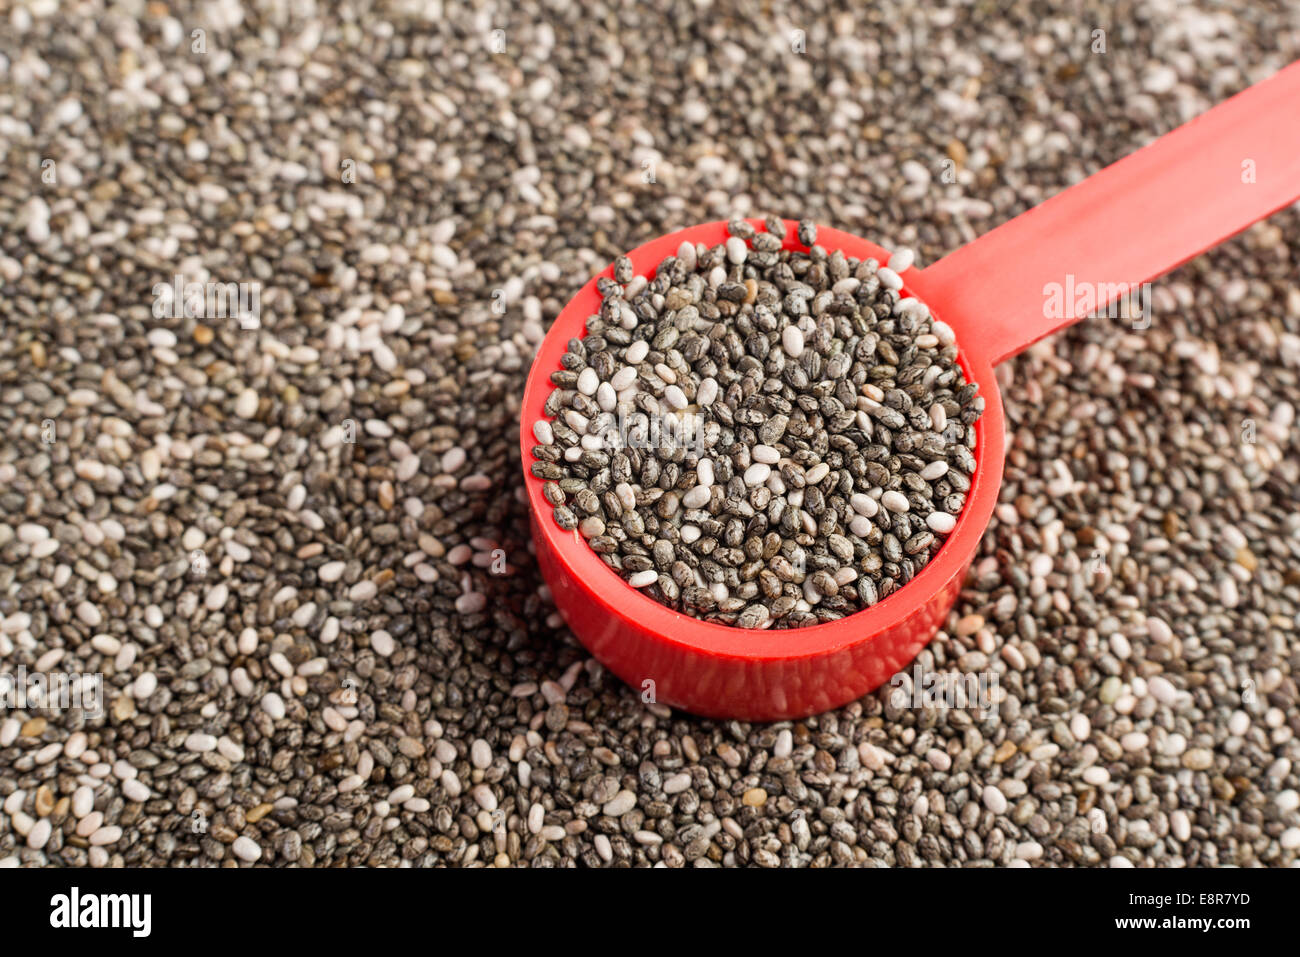 Chia seeds in a red measuring spoon - Stock Image